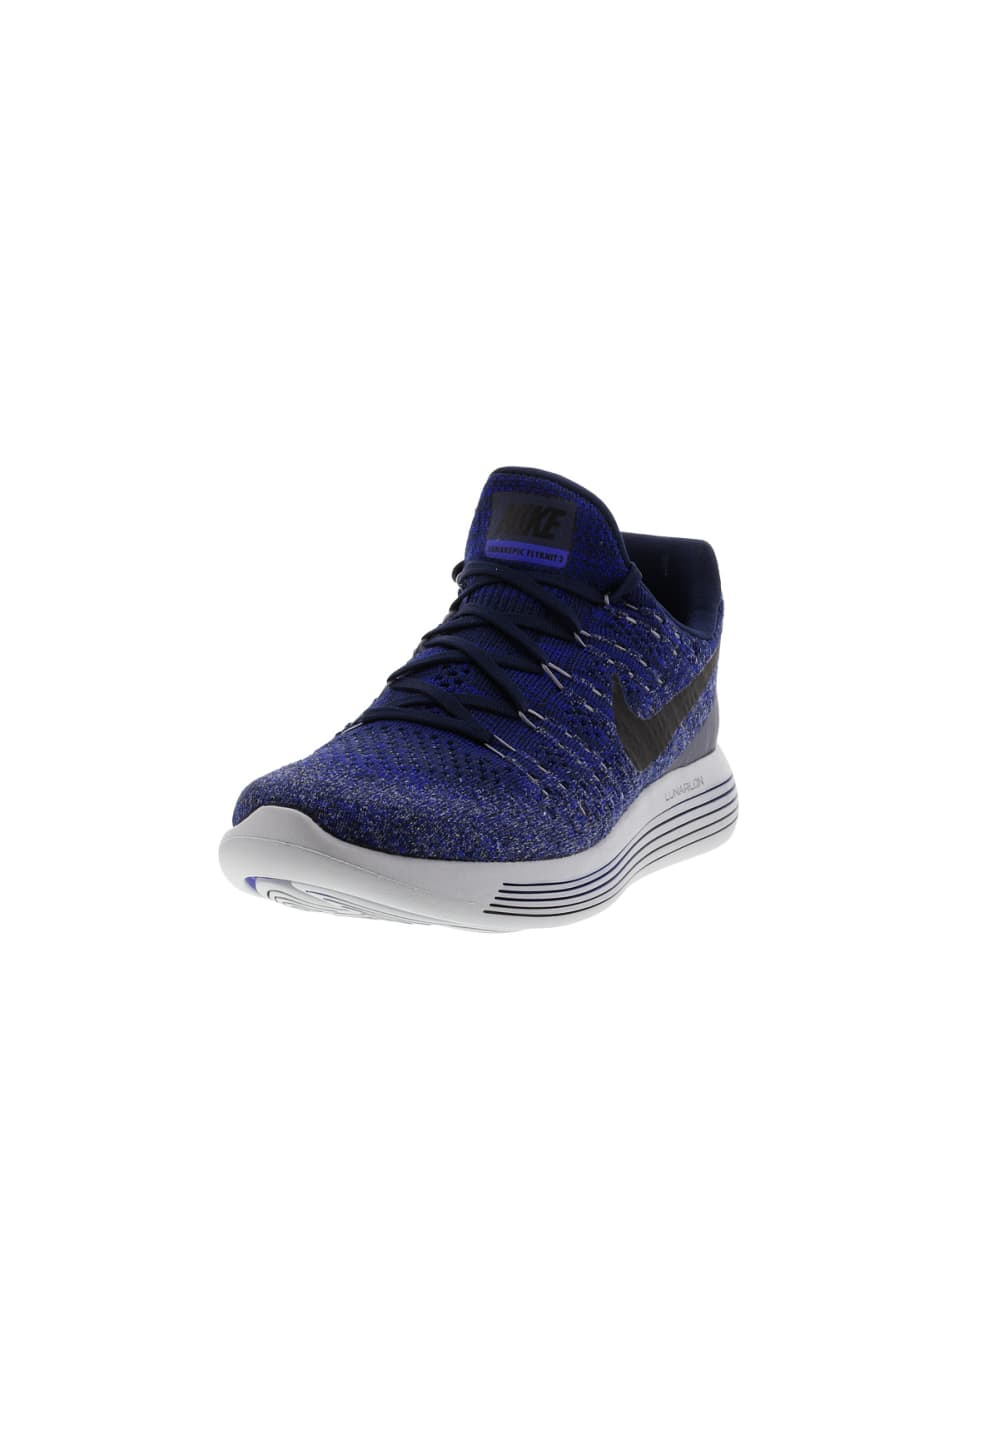 sports shoes b1deb b6a0c Nike LunarEpic Low Flyknit 2 - Running shoes for Men - Blue